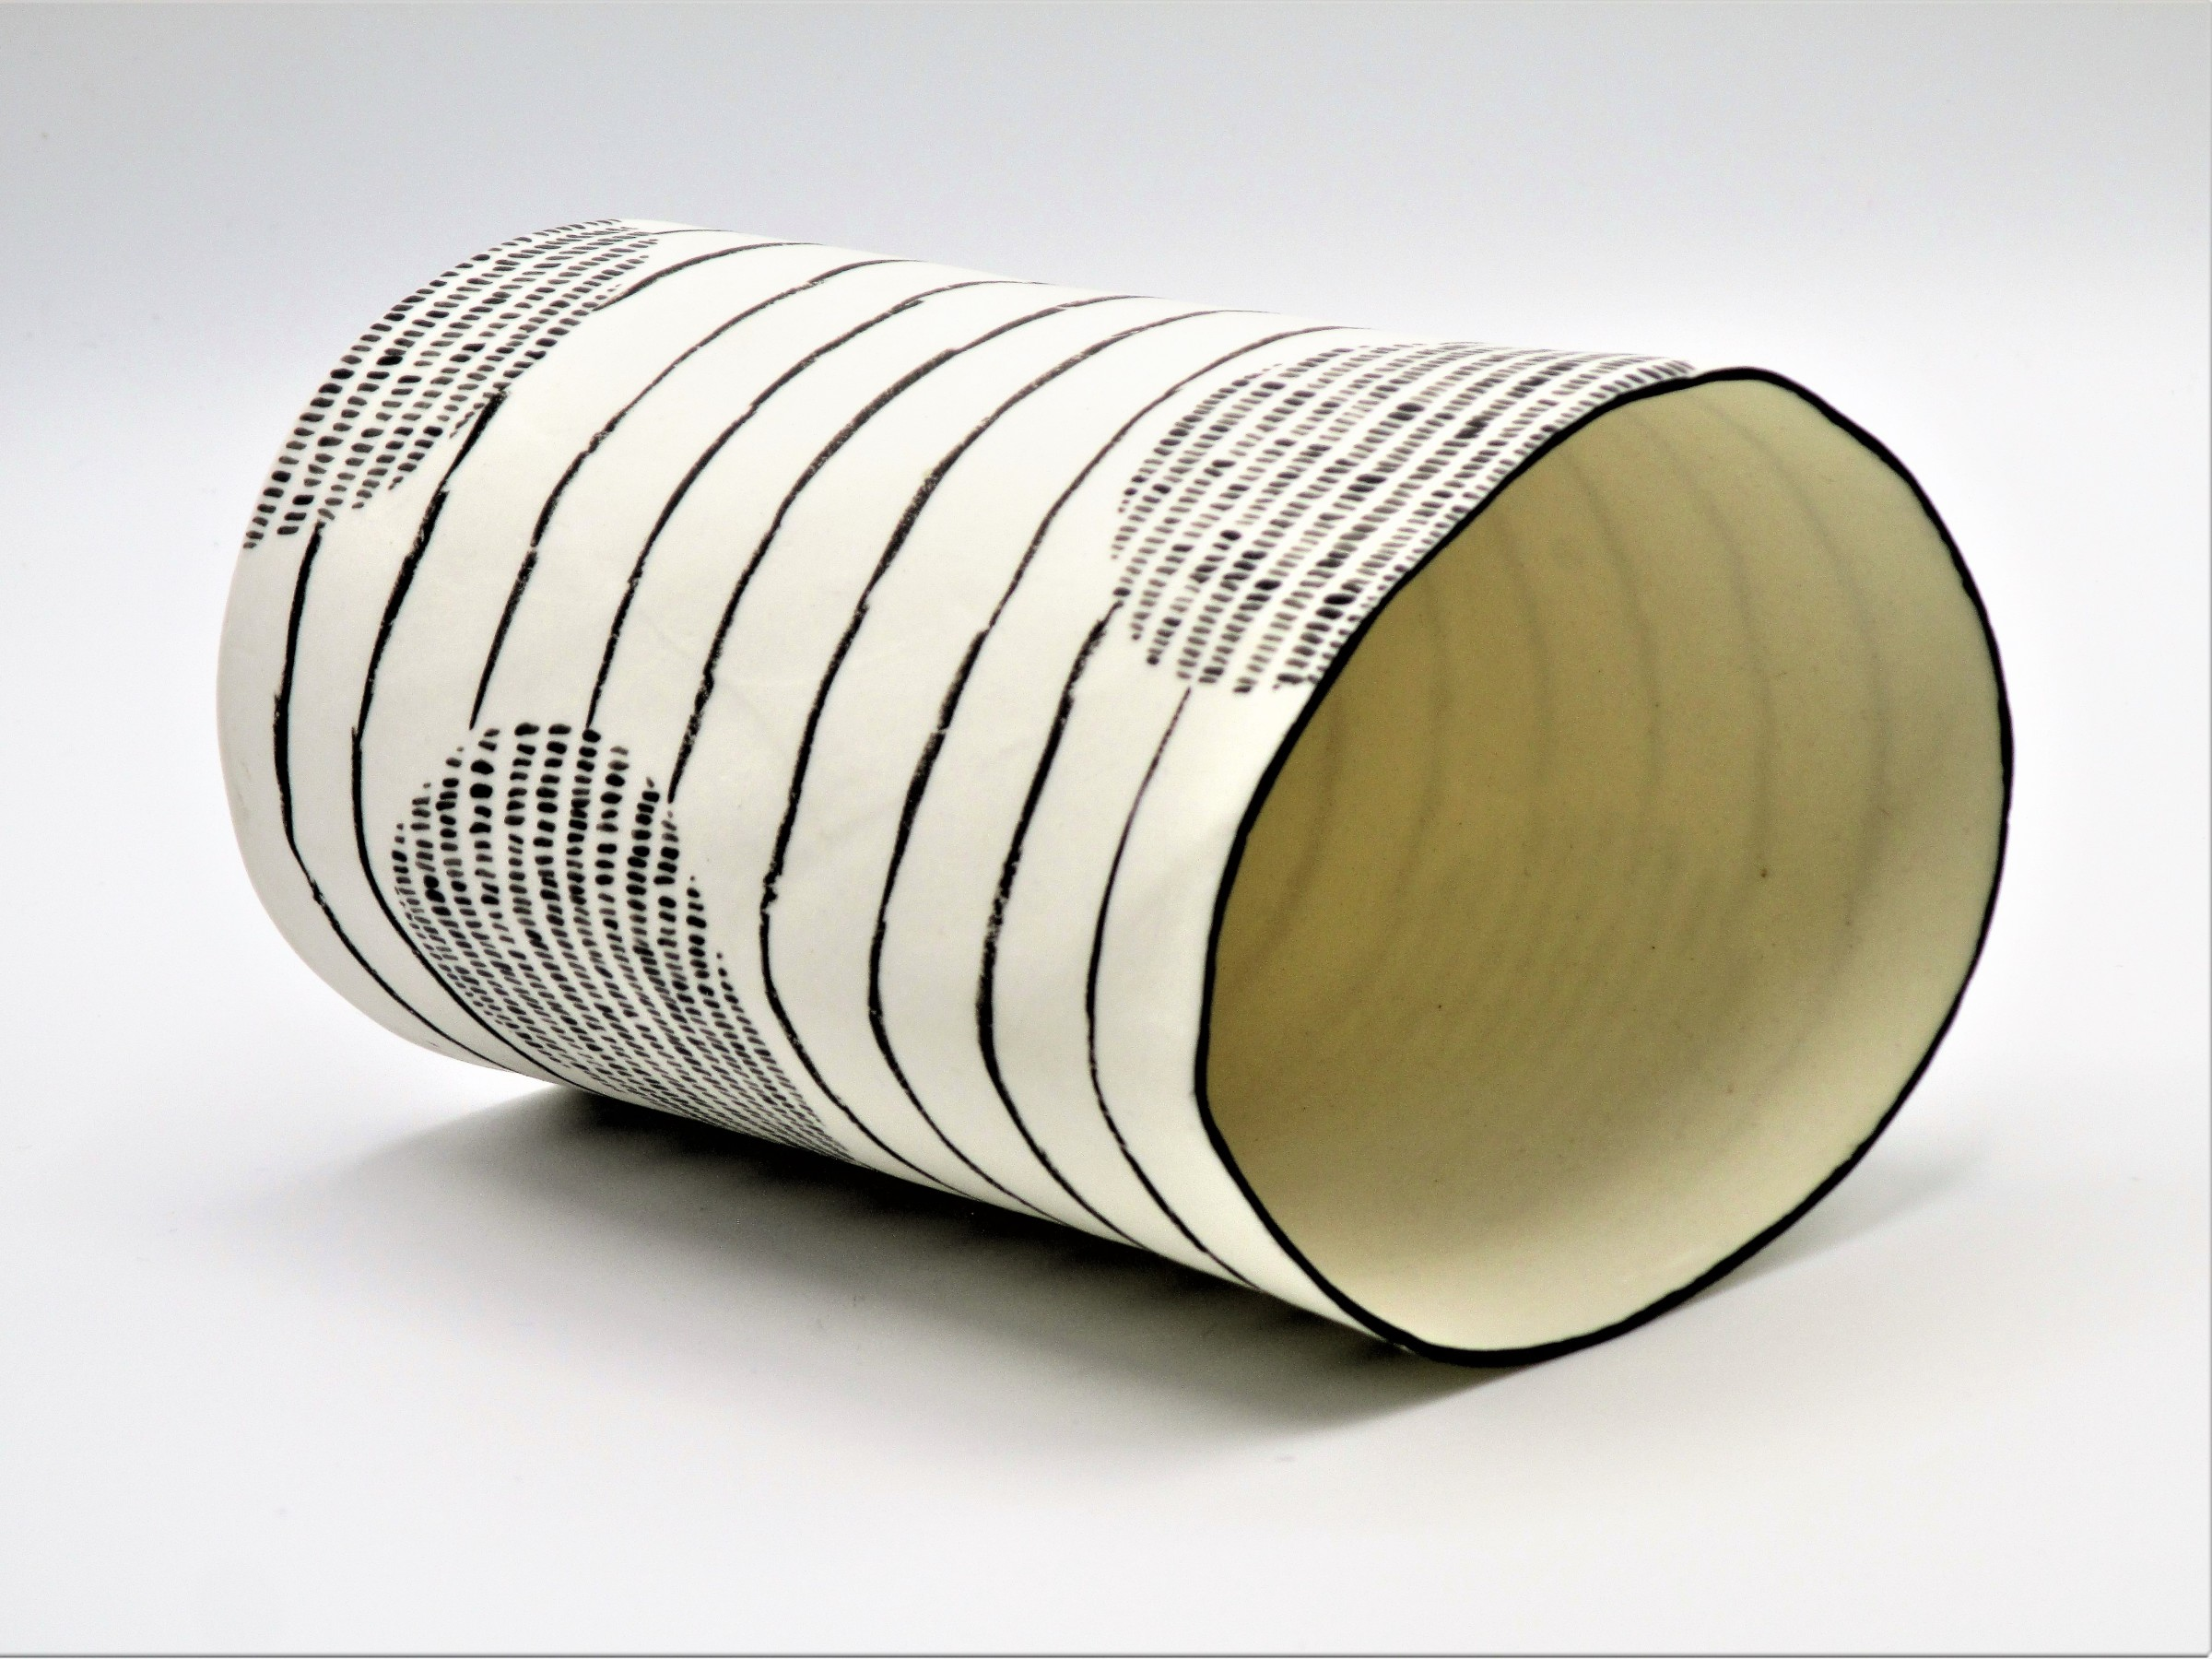 """<span class=""""link fancybox-details-link""""><a href=""""/artists/226-jane-muende/works/7158-jane-muende-translucent-white-cylinder-with-repeated-black-painted-stitch-2020/"""">View Detail Page</a></span><div class=""""artist""""><strong>Jane Muende</strong></div> <div class=""""title""""><em>Translucent white cylinder with repeated black painted 'stitch lines' and horizontal drawn lines</em>, 2020</div> <div class=""""medium"""">Hand built in paper porcelain</div> <div class=""""dimensions"""">13.5 cm x 7.5 cm </div><div class=""""price"""">£200.00</div><div class=""""copyright_line"""">Own Art: £20 x 1o months 0% APR</div>"""